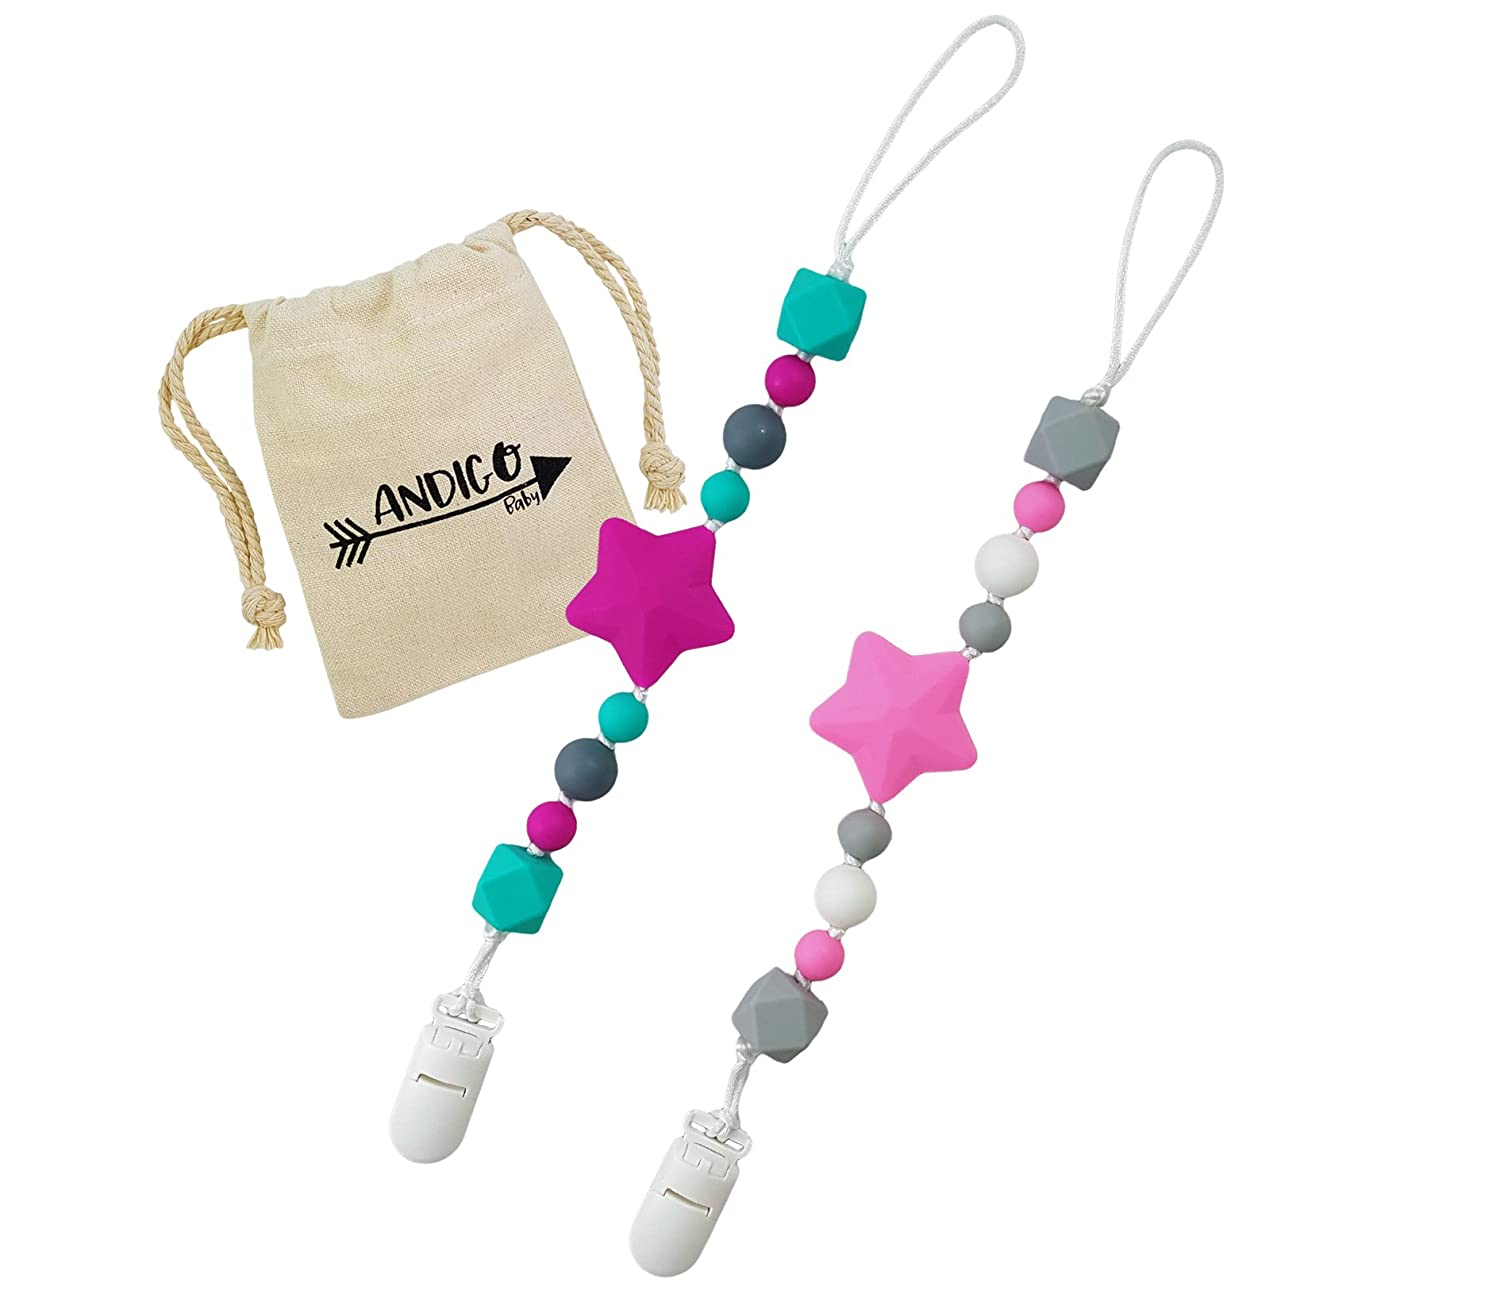 Pacifier Clip Holder - 2 in 1 - with Silicone Teething Beads, for Girls, Boys, Unisex, Set of Two, Compatible with MAM, Soothie, NUK, Tommee Tippee and Other Pacifiers - Blue/Turquoise ANDIGO